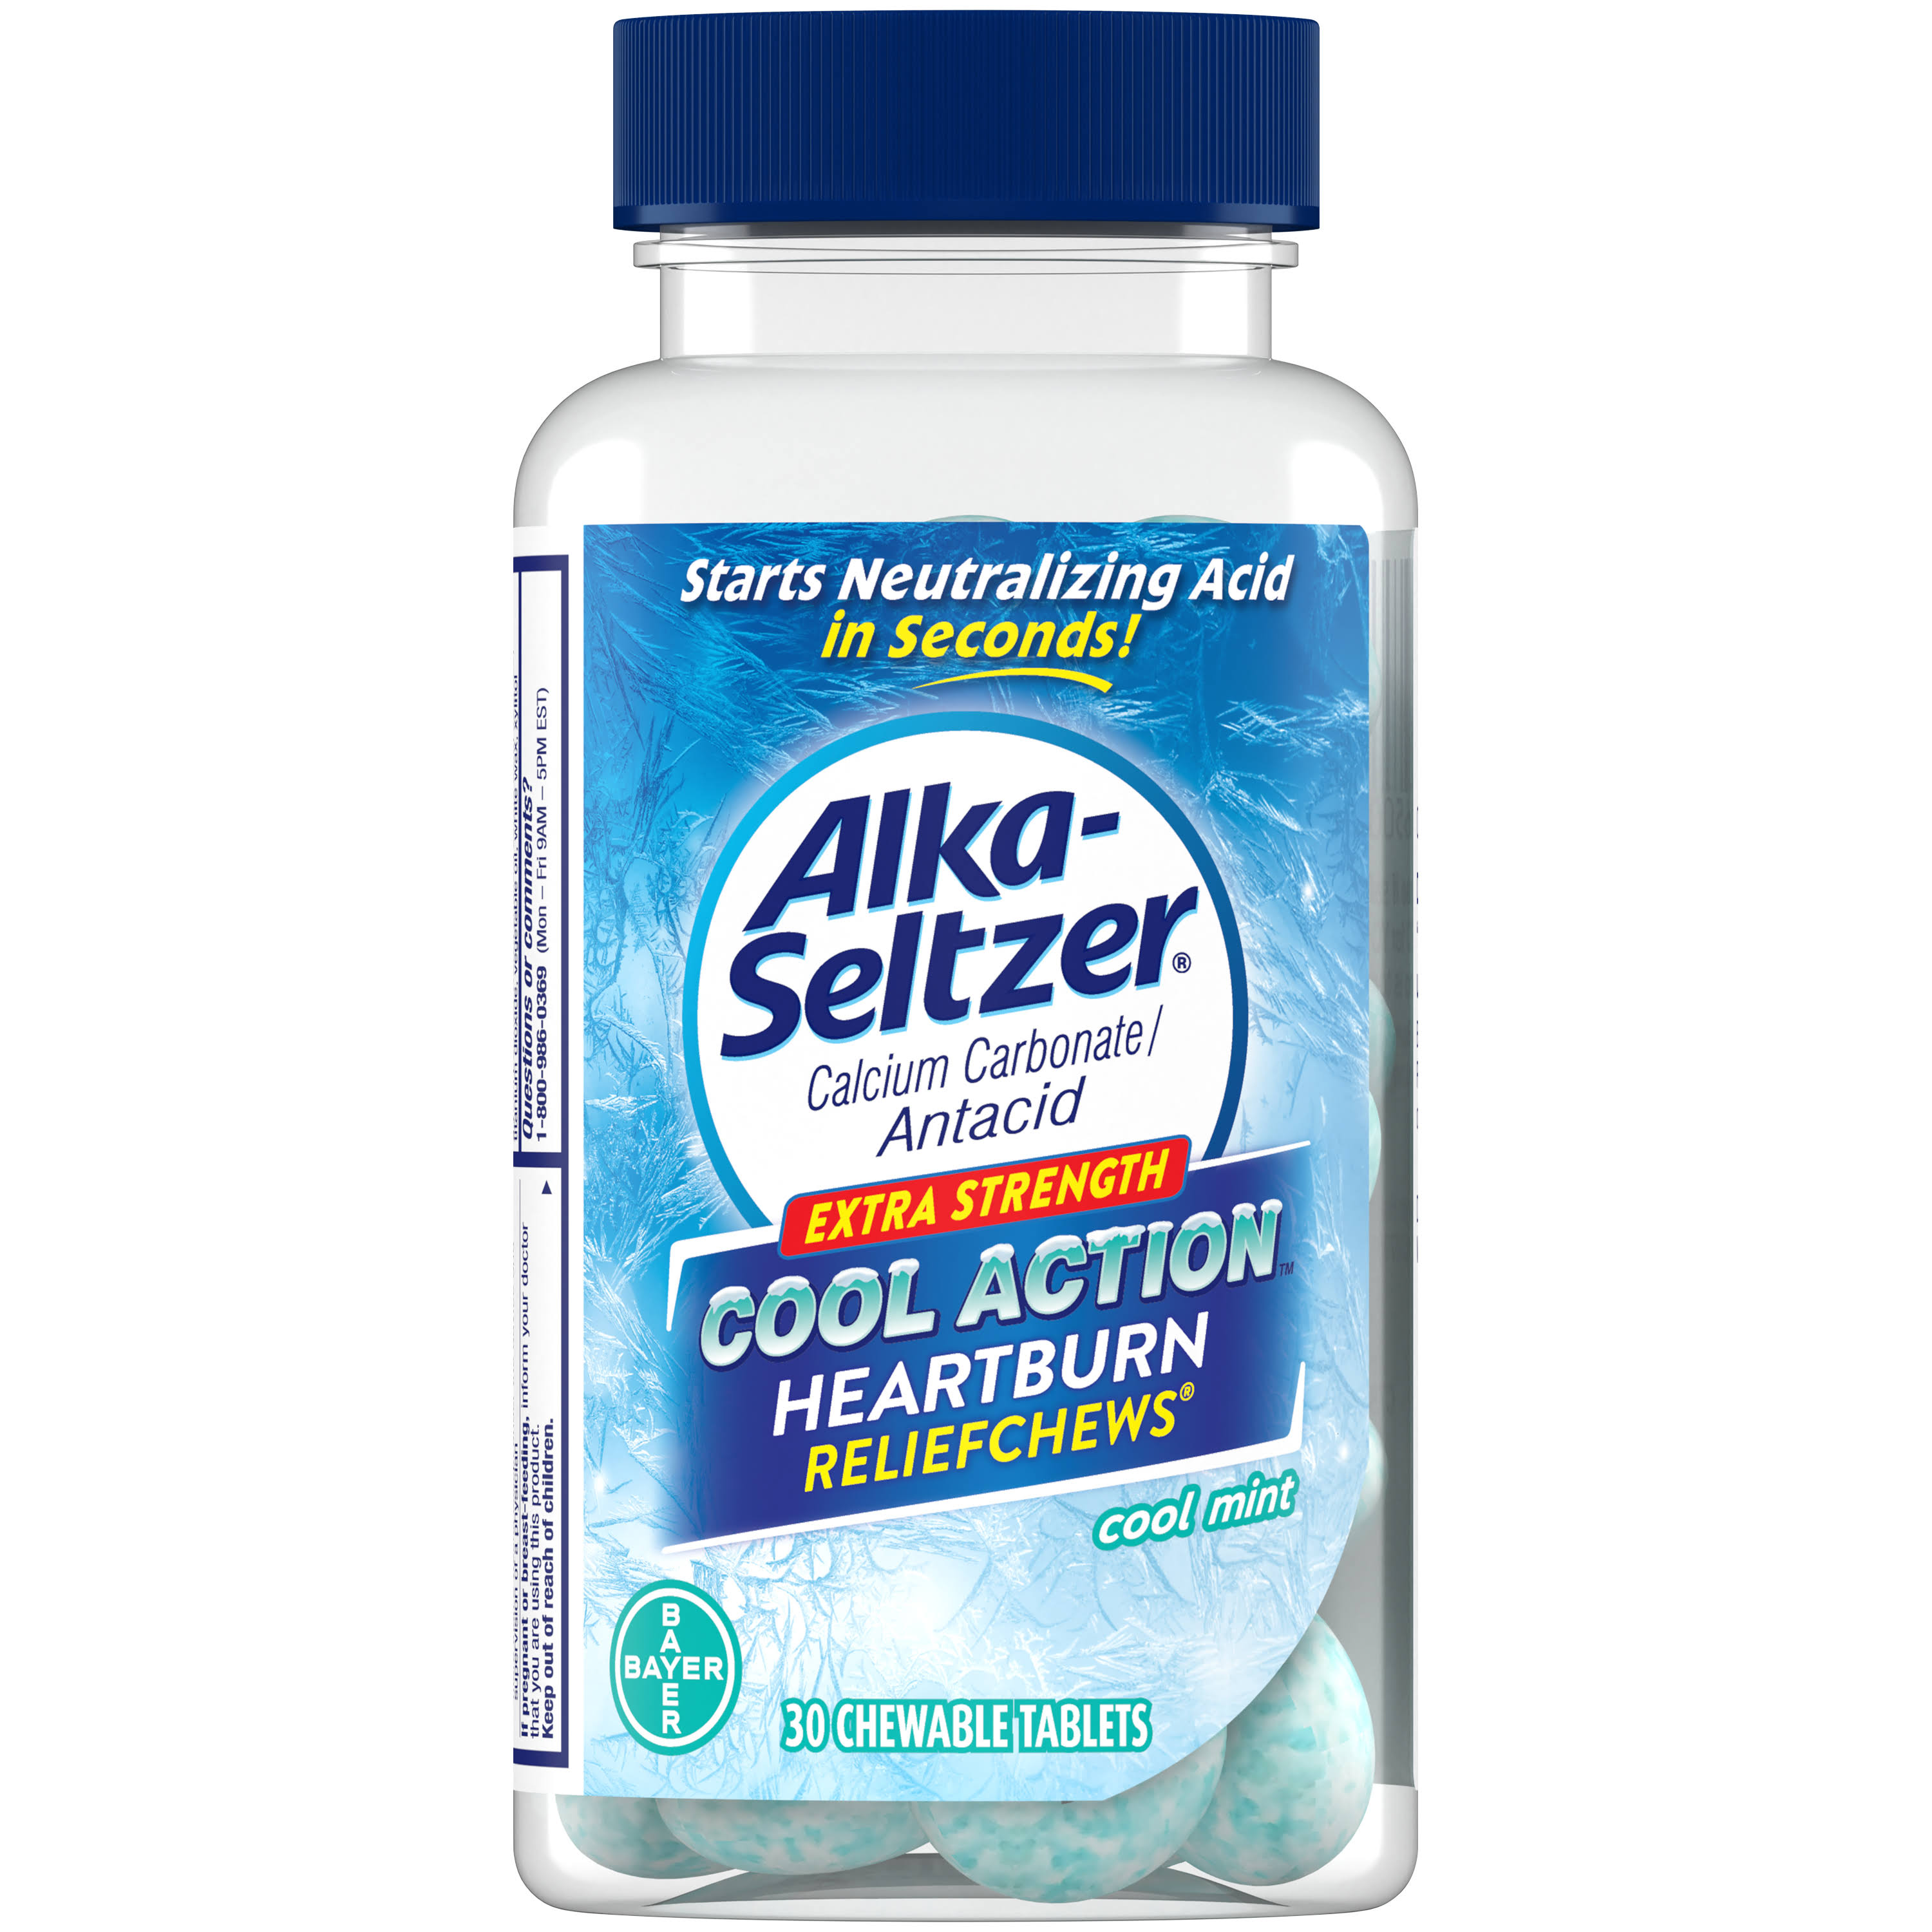 Alka Seltzer Cool Action Heartburn Relief Chews - Cool Mint, 30ct